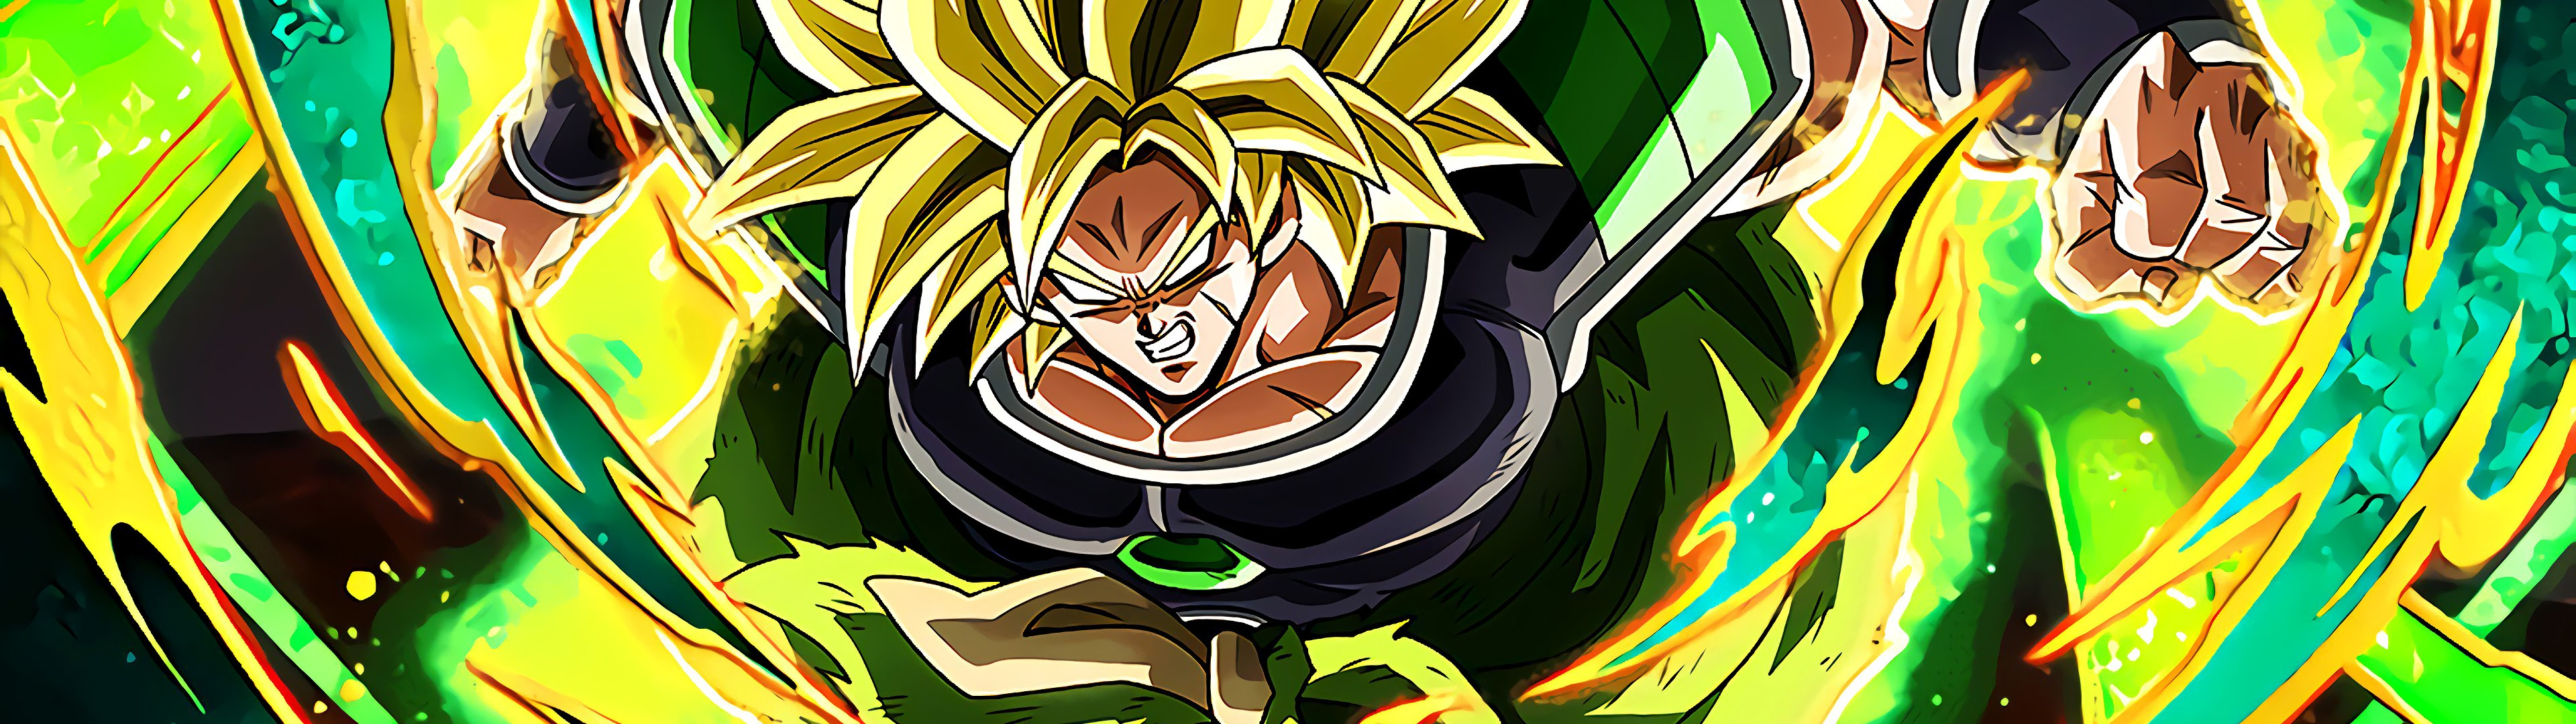 Broly 4k Wallpaper Posted By Christopher Anderson